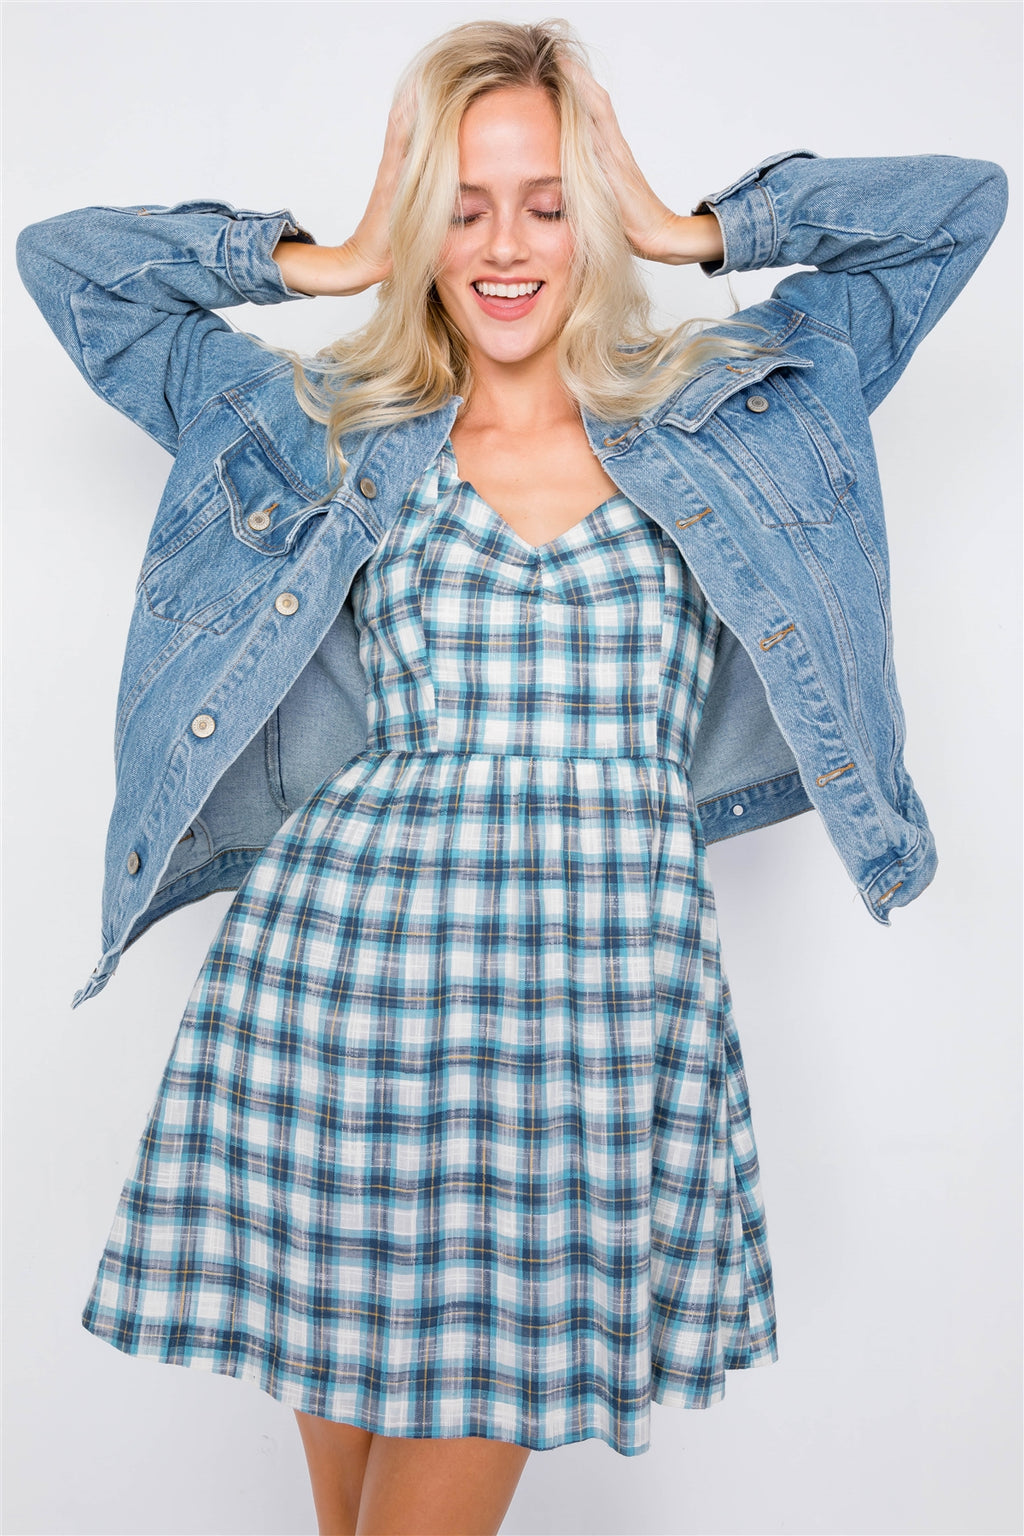 Baby Girl Blue Plaid Dress